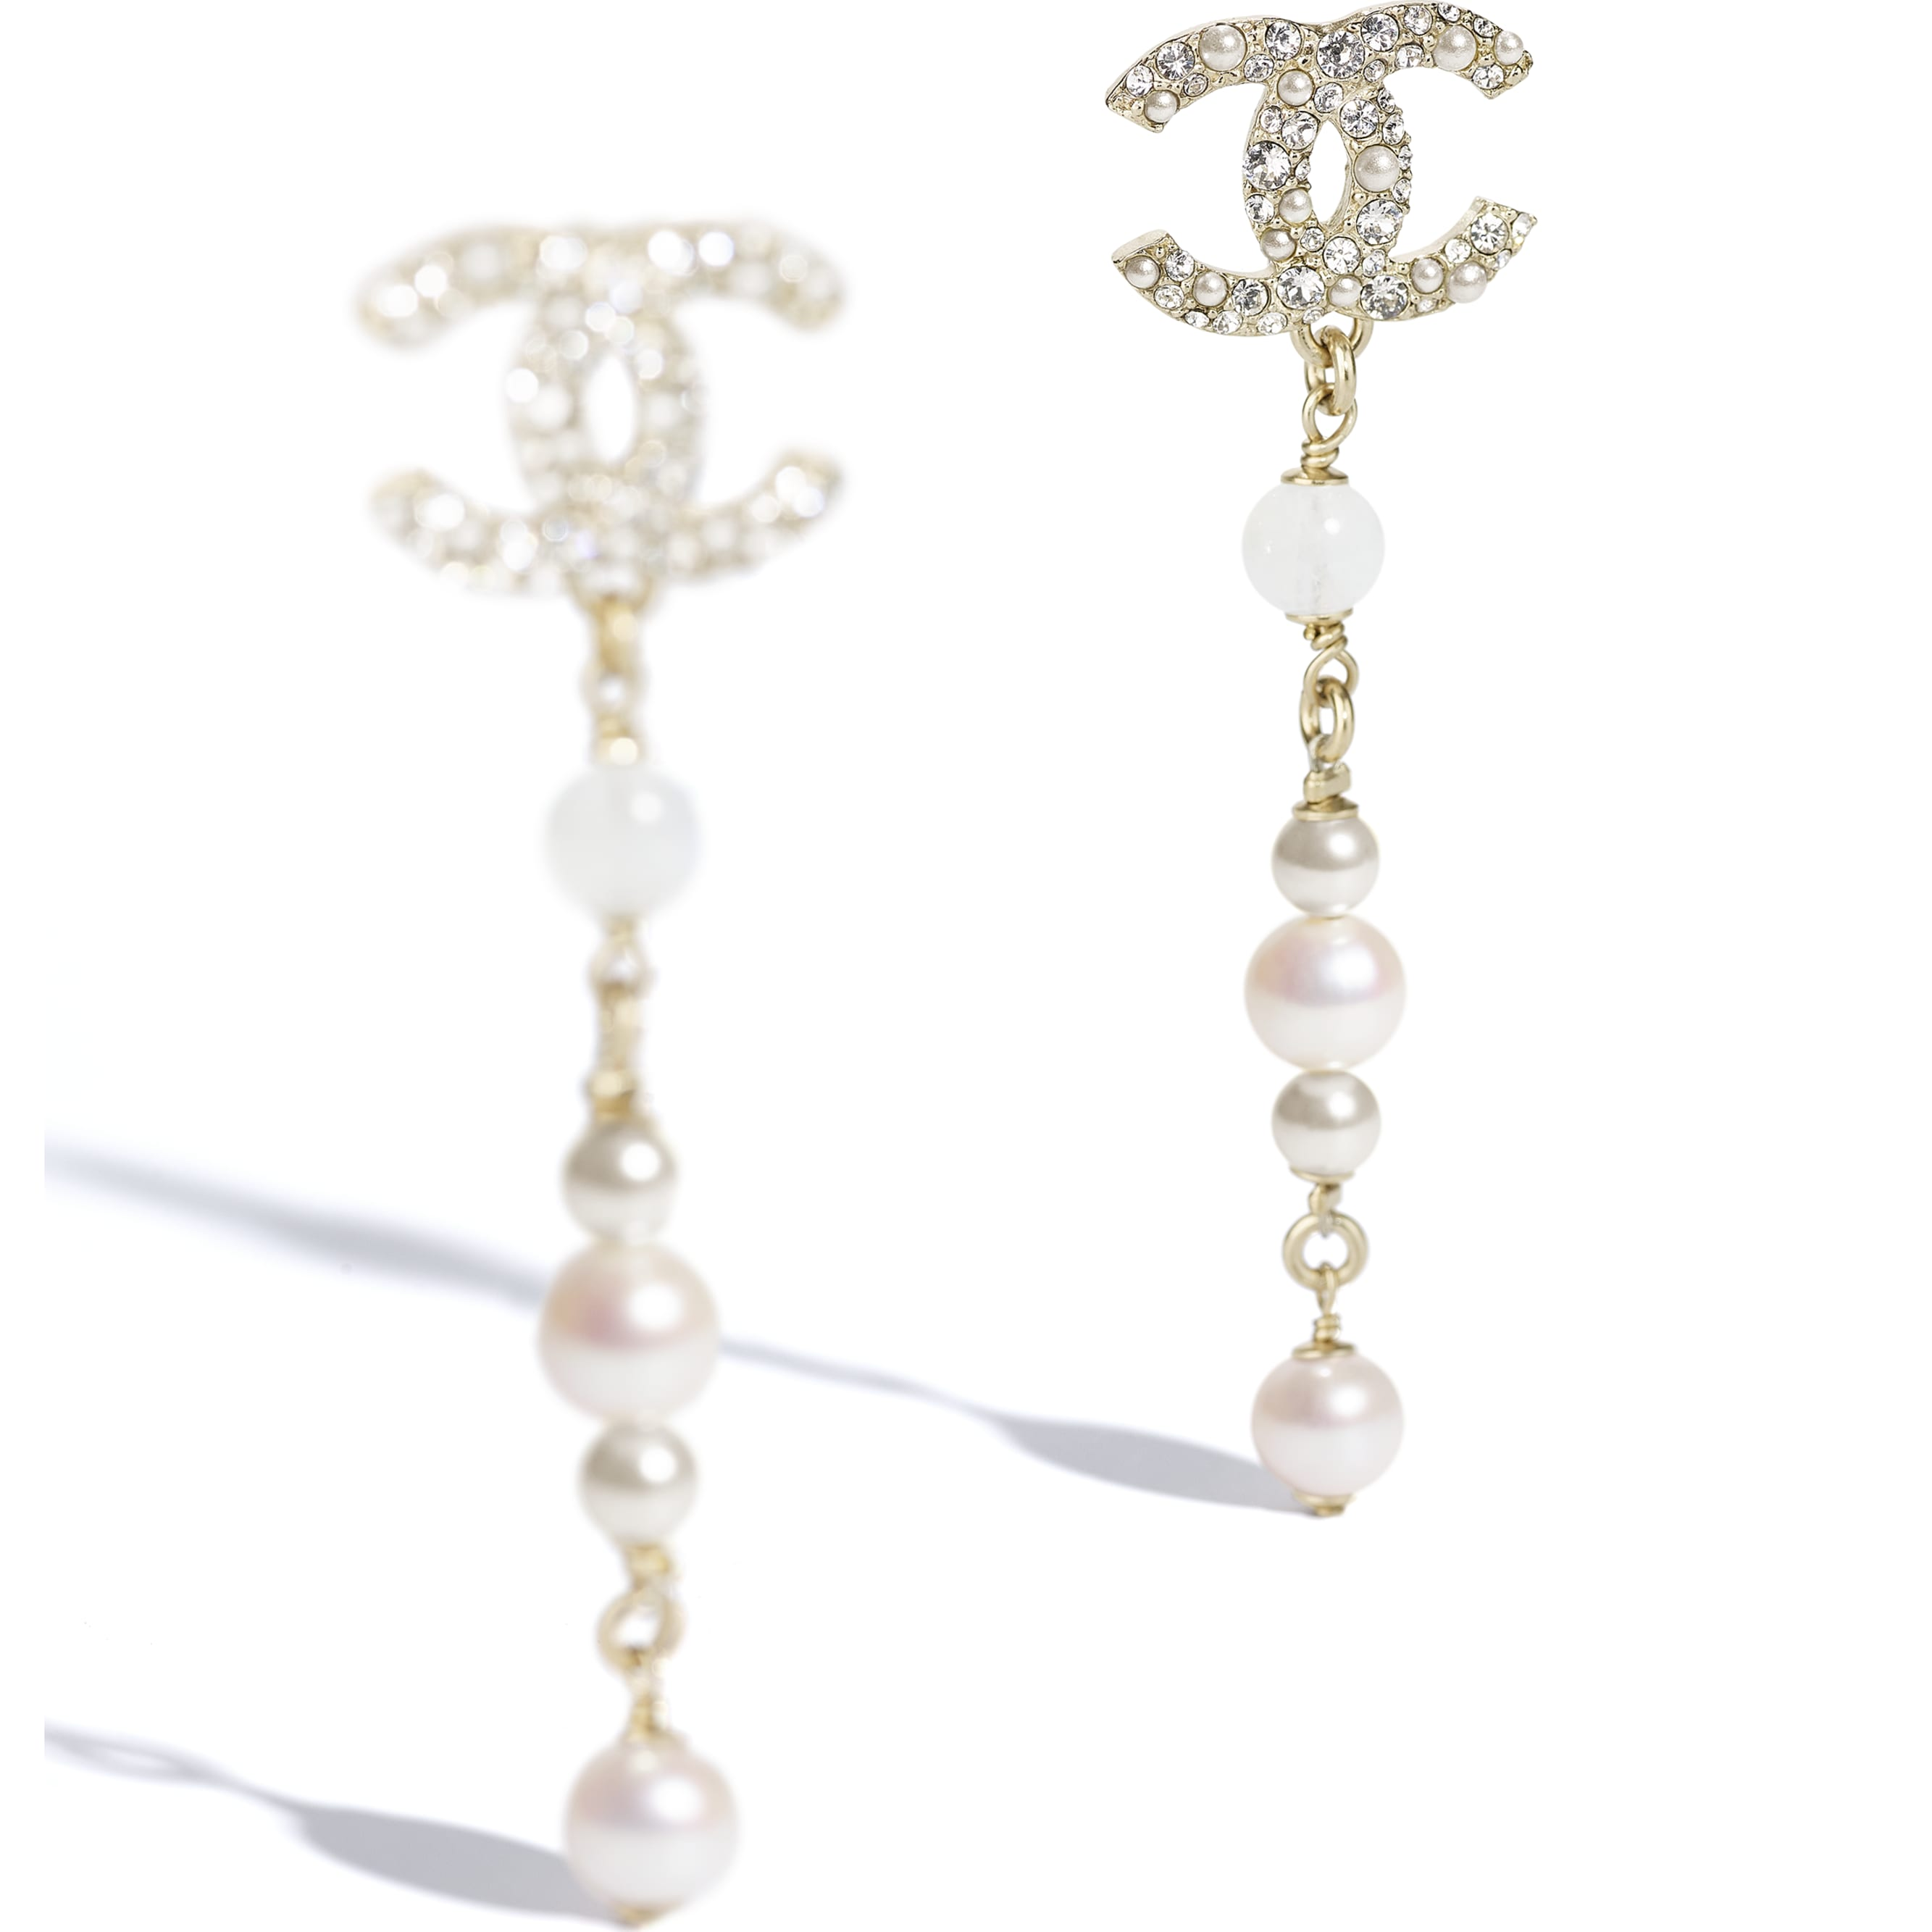 Earrings - Gold, Pearly White & Crystal - Metal, Natural Stones, Cultured Freshwater Pearls, Glass Pearls & Strass - CHANEL - Alternative view - see standard sized version